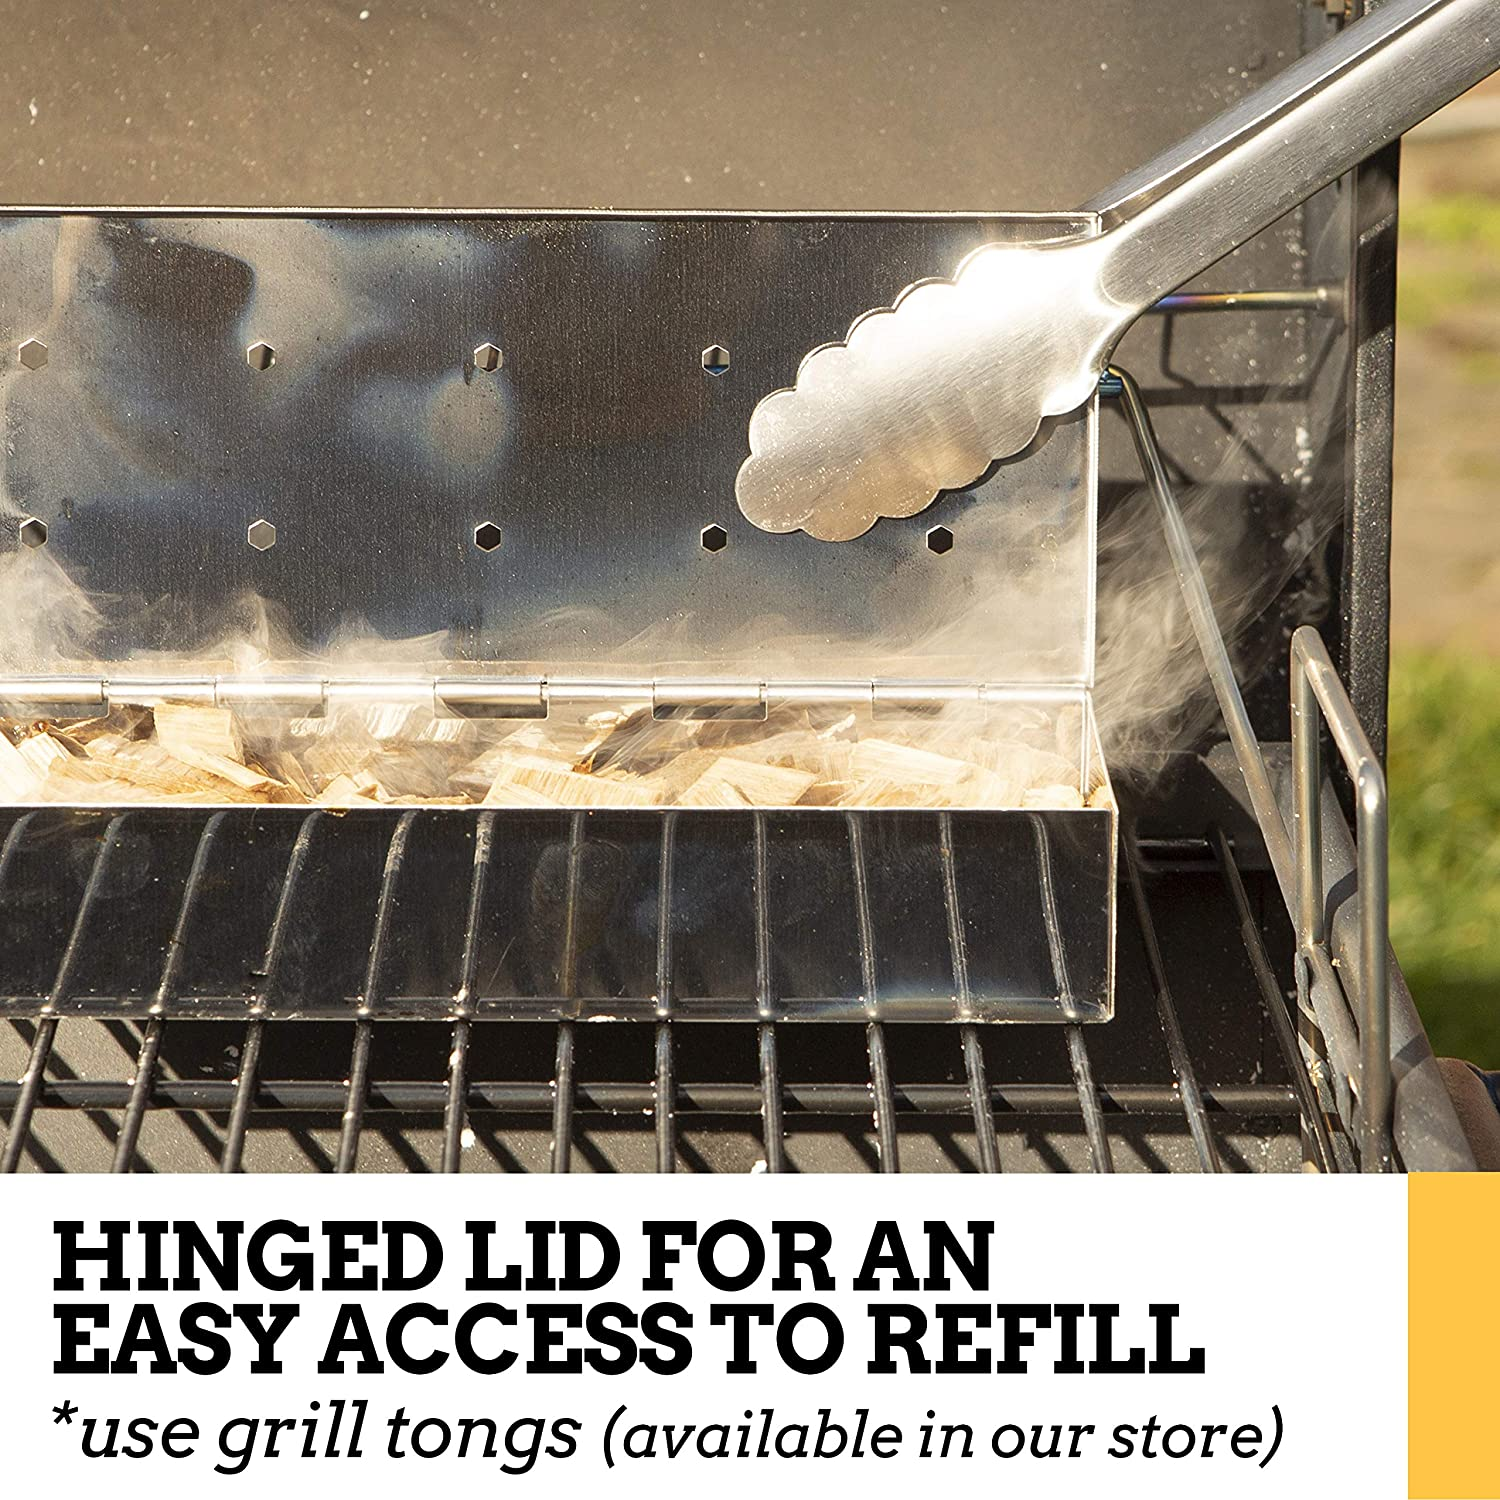 Use a Gas or Charcoal BBQ Grill and Still Get That Delicious Smoky Barbecue Flavored Grilled Meat Smoker Box for Wood Chips Brushed Finish Stainless Steel Brushed Finish Stainless Steel